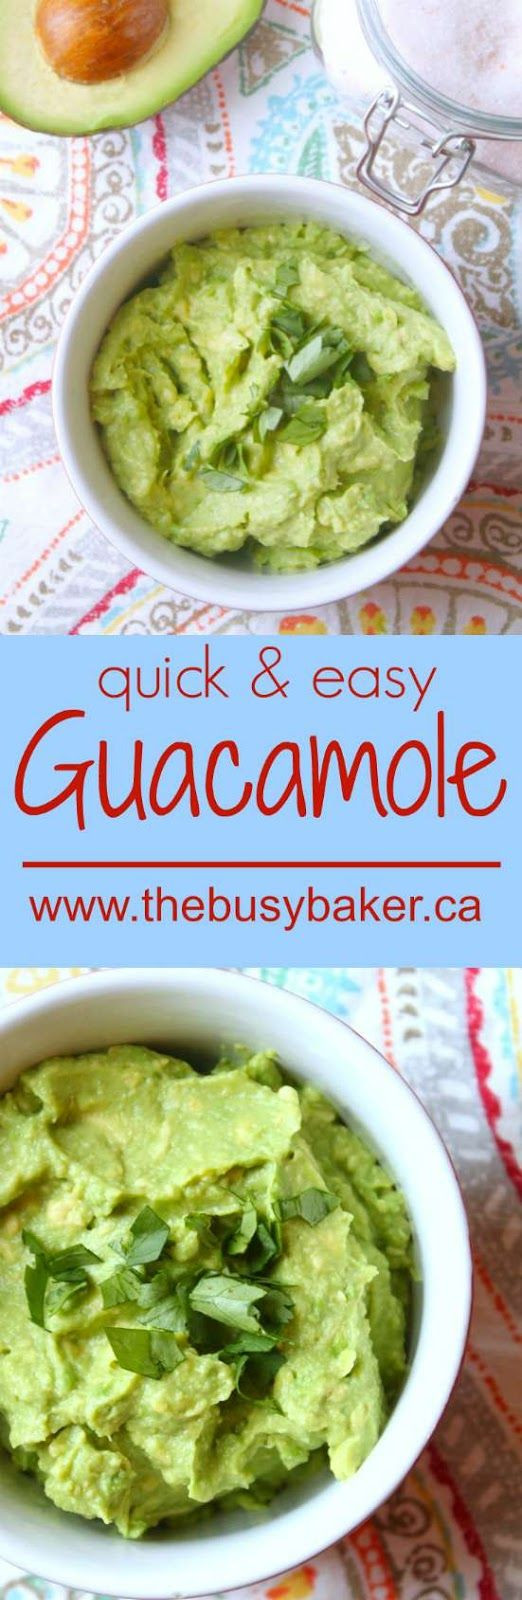 Healthy Guacamole Recipe  Best 25 Guacamole recipe ideas on Pinterest